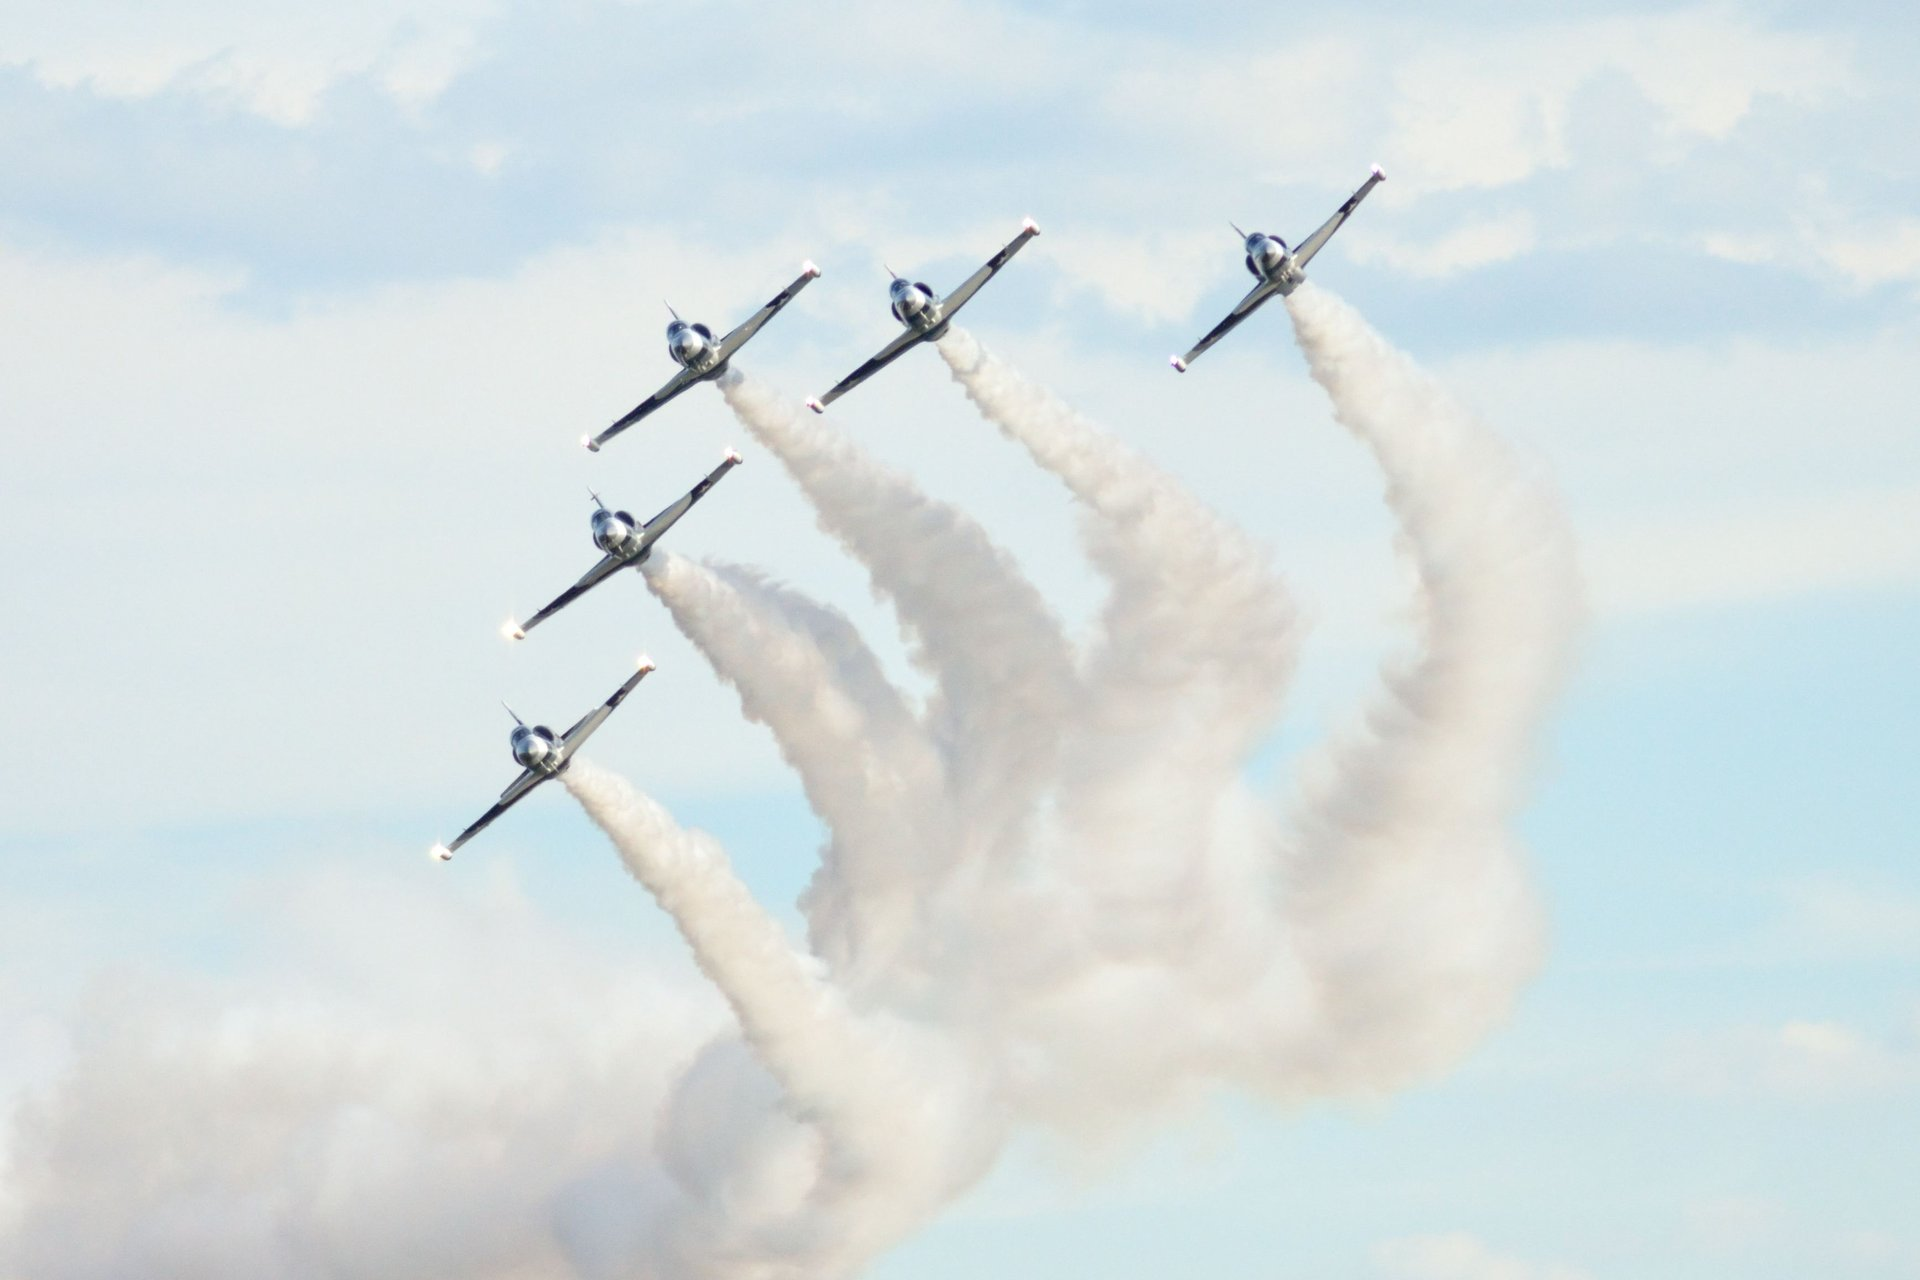 Best time for Wings Over North Georgia Air Show in Georgia 2020